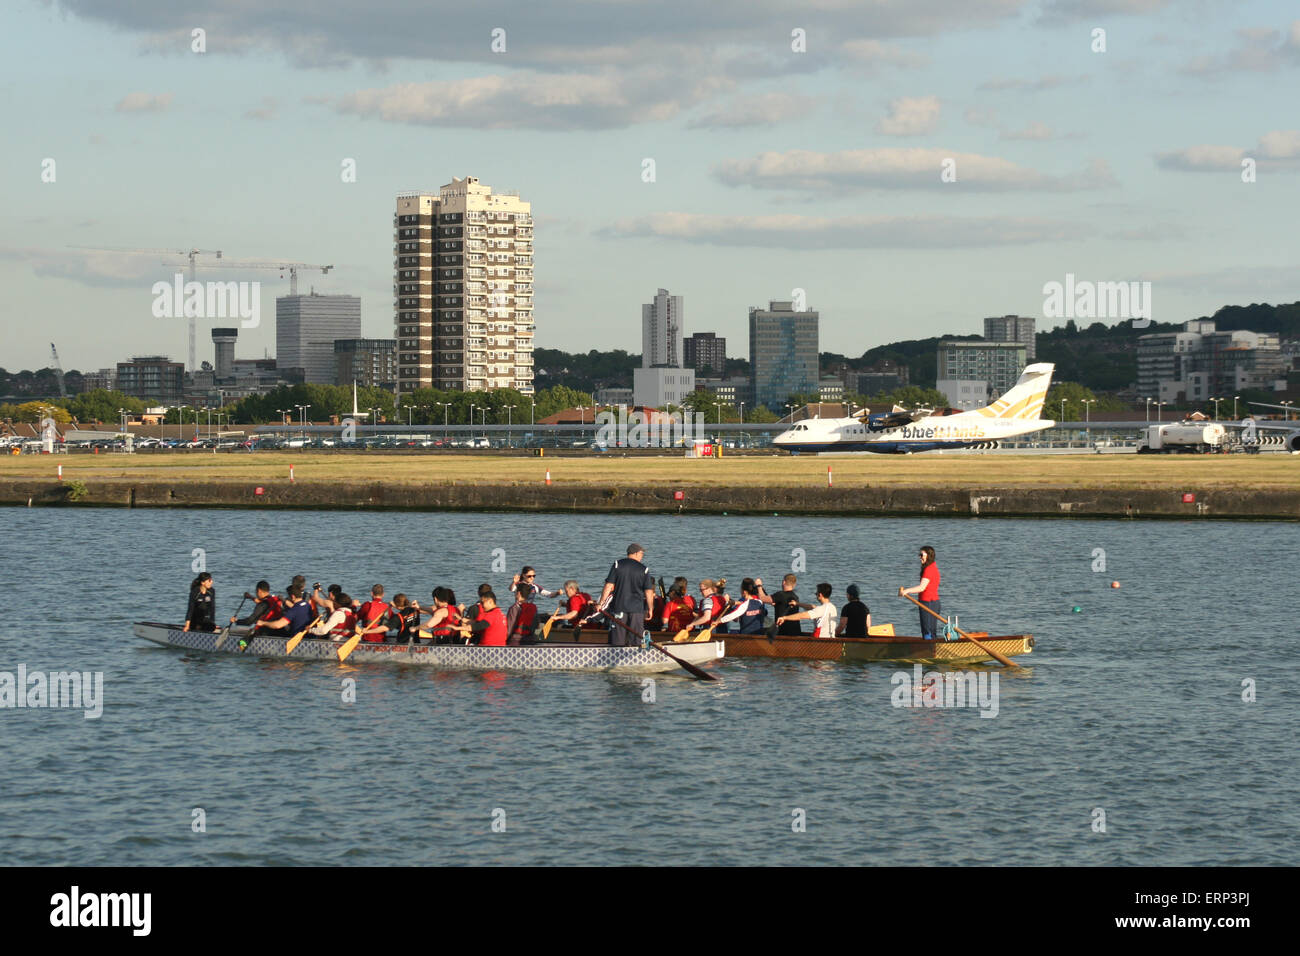 LONDON CITY DOCKLANDS AIRPORT ROWING BOAT - Stock Image